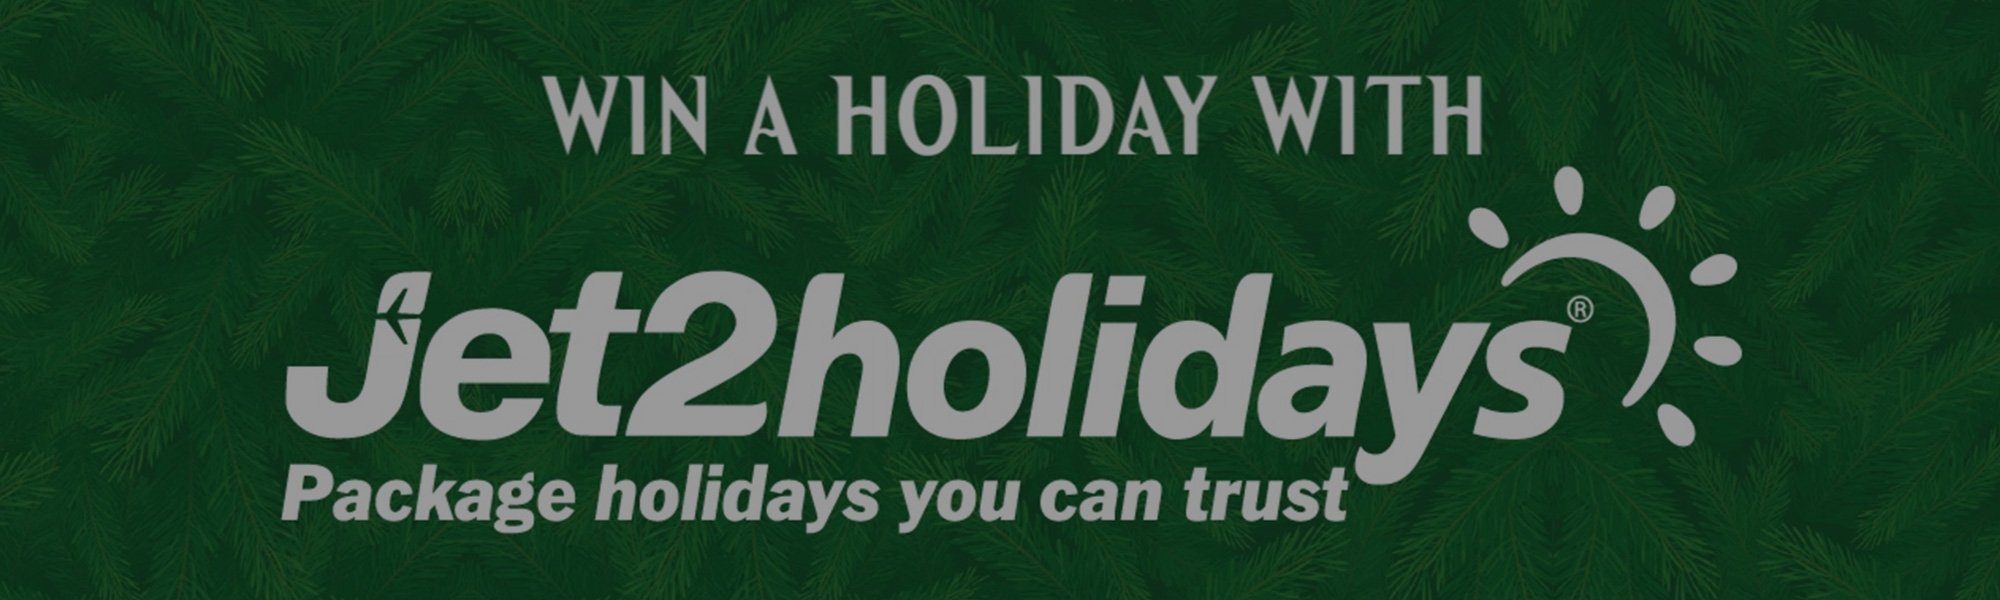 Jet2holidays Christmas Competition